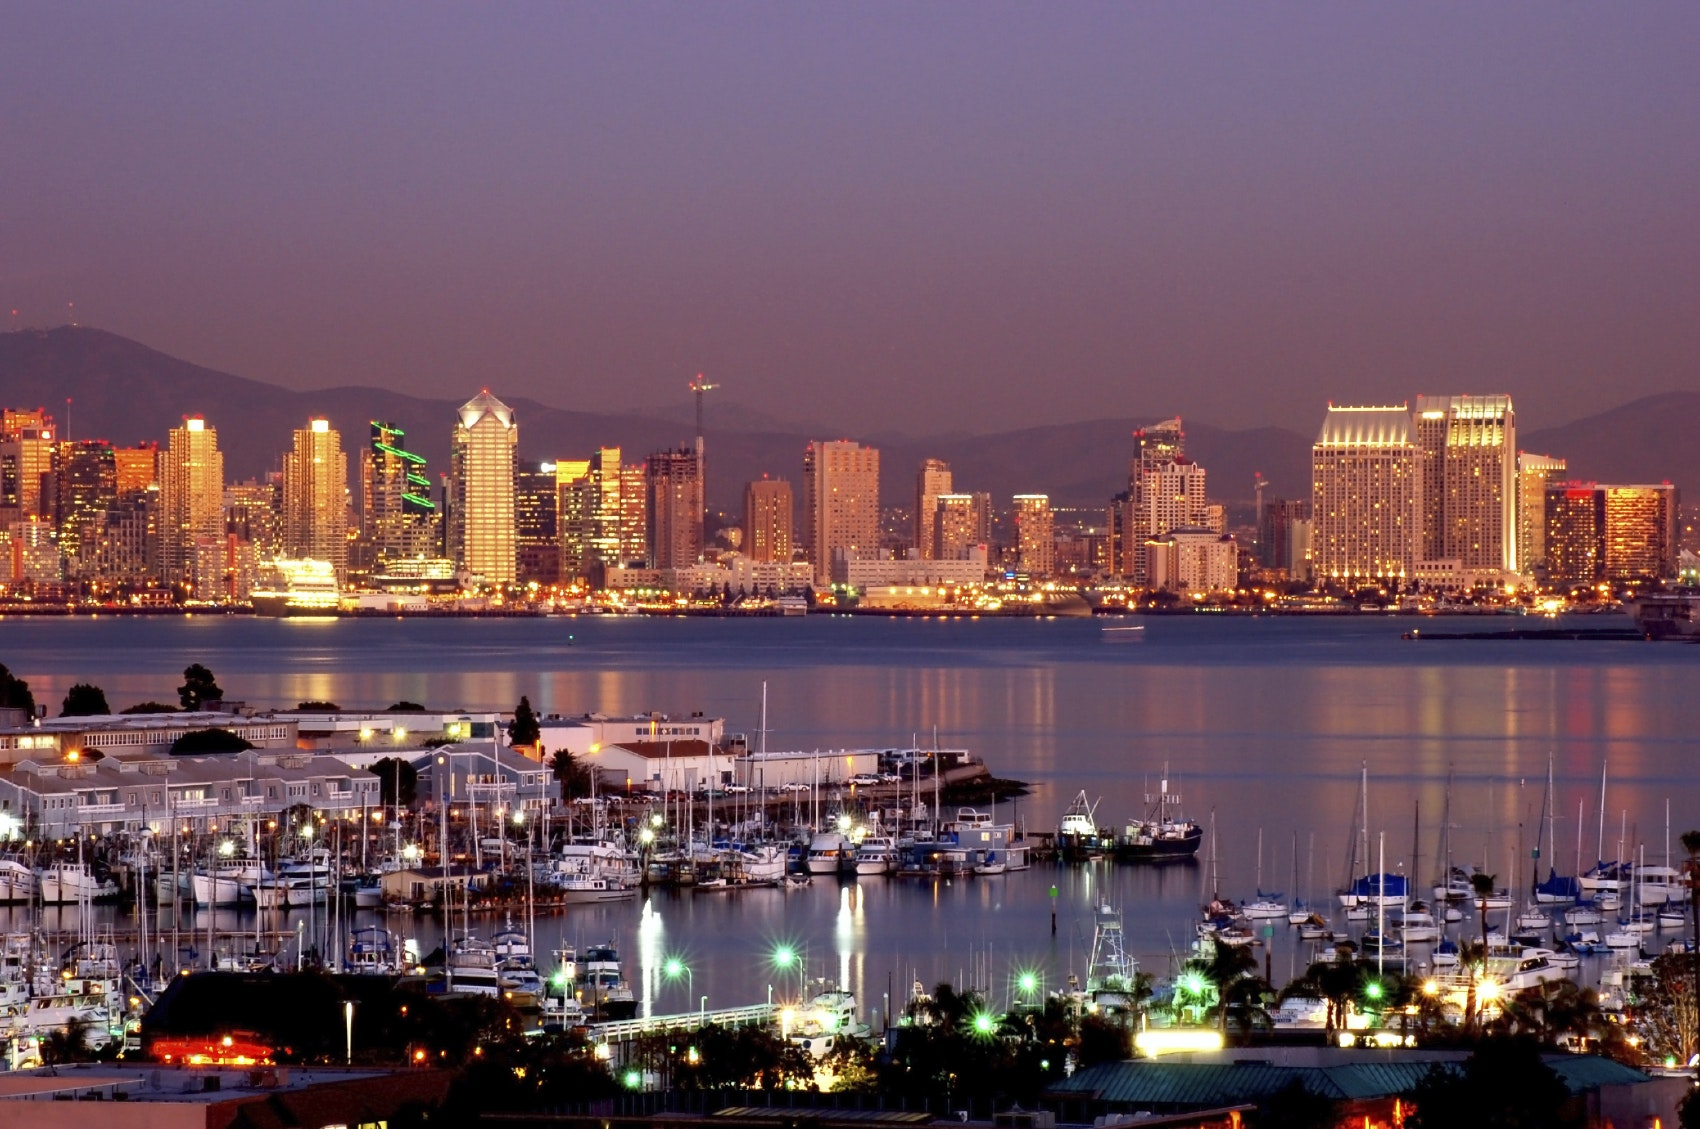 Instamotor Officially Launches in San Diego!